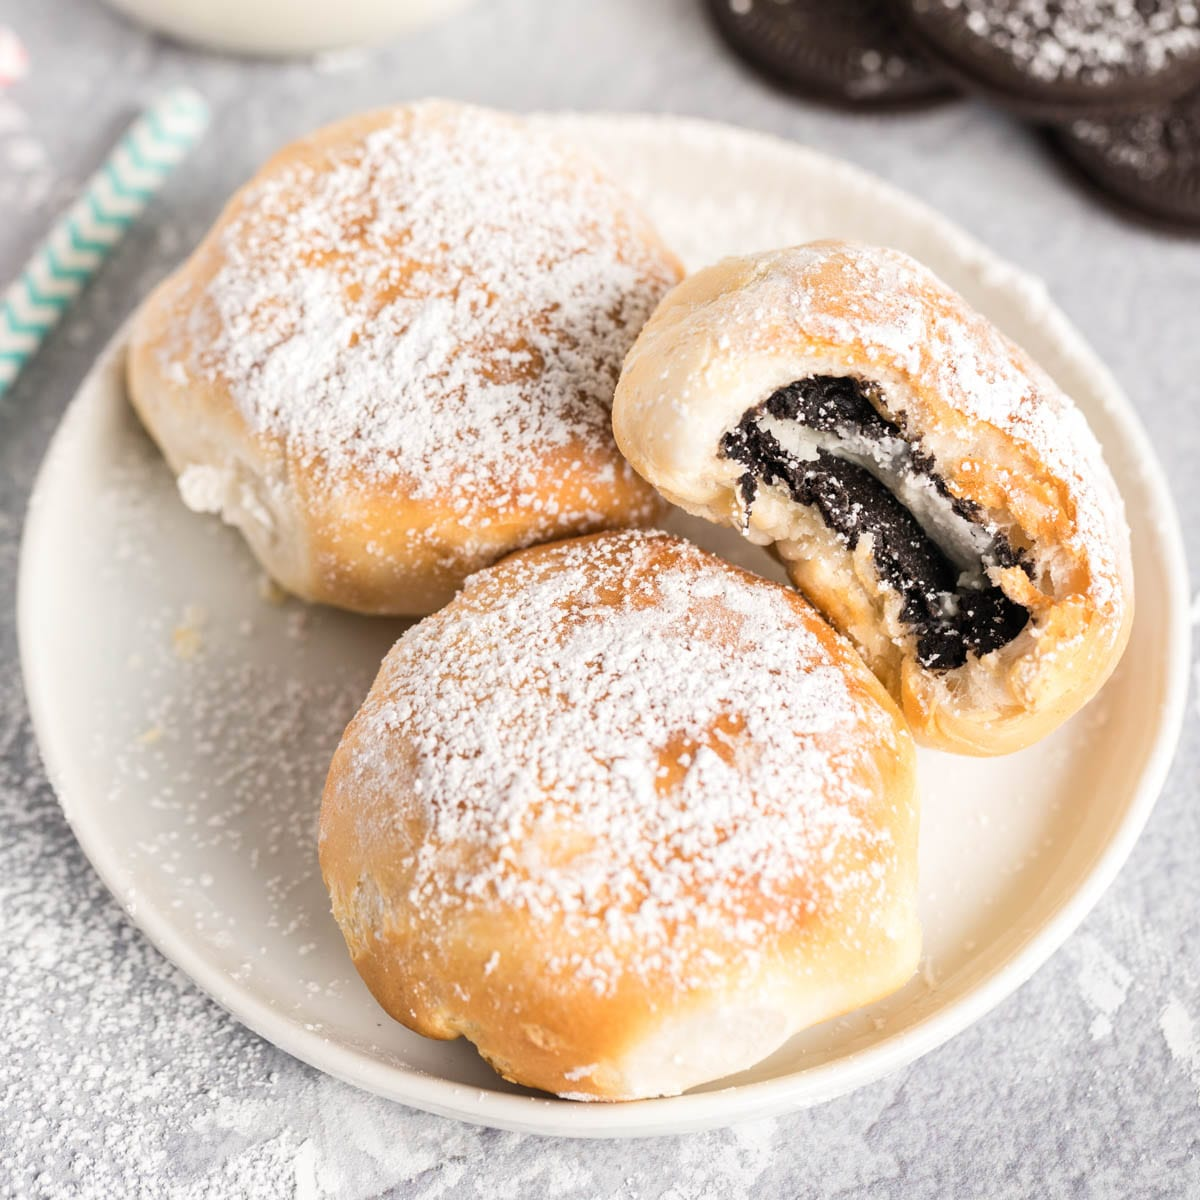 Three fried Oreos on a plate with a bite out of one.